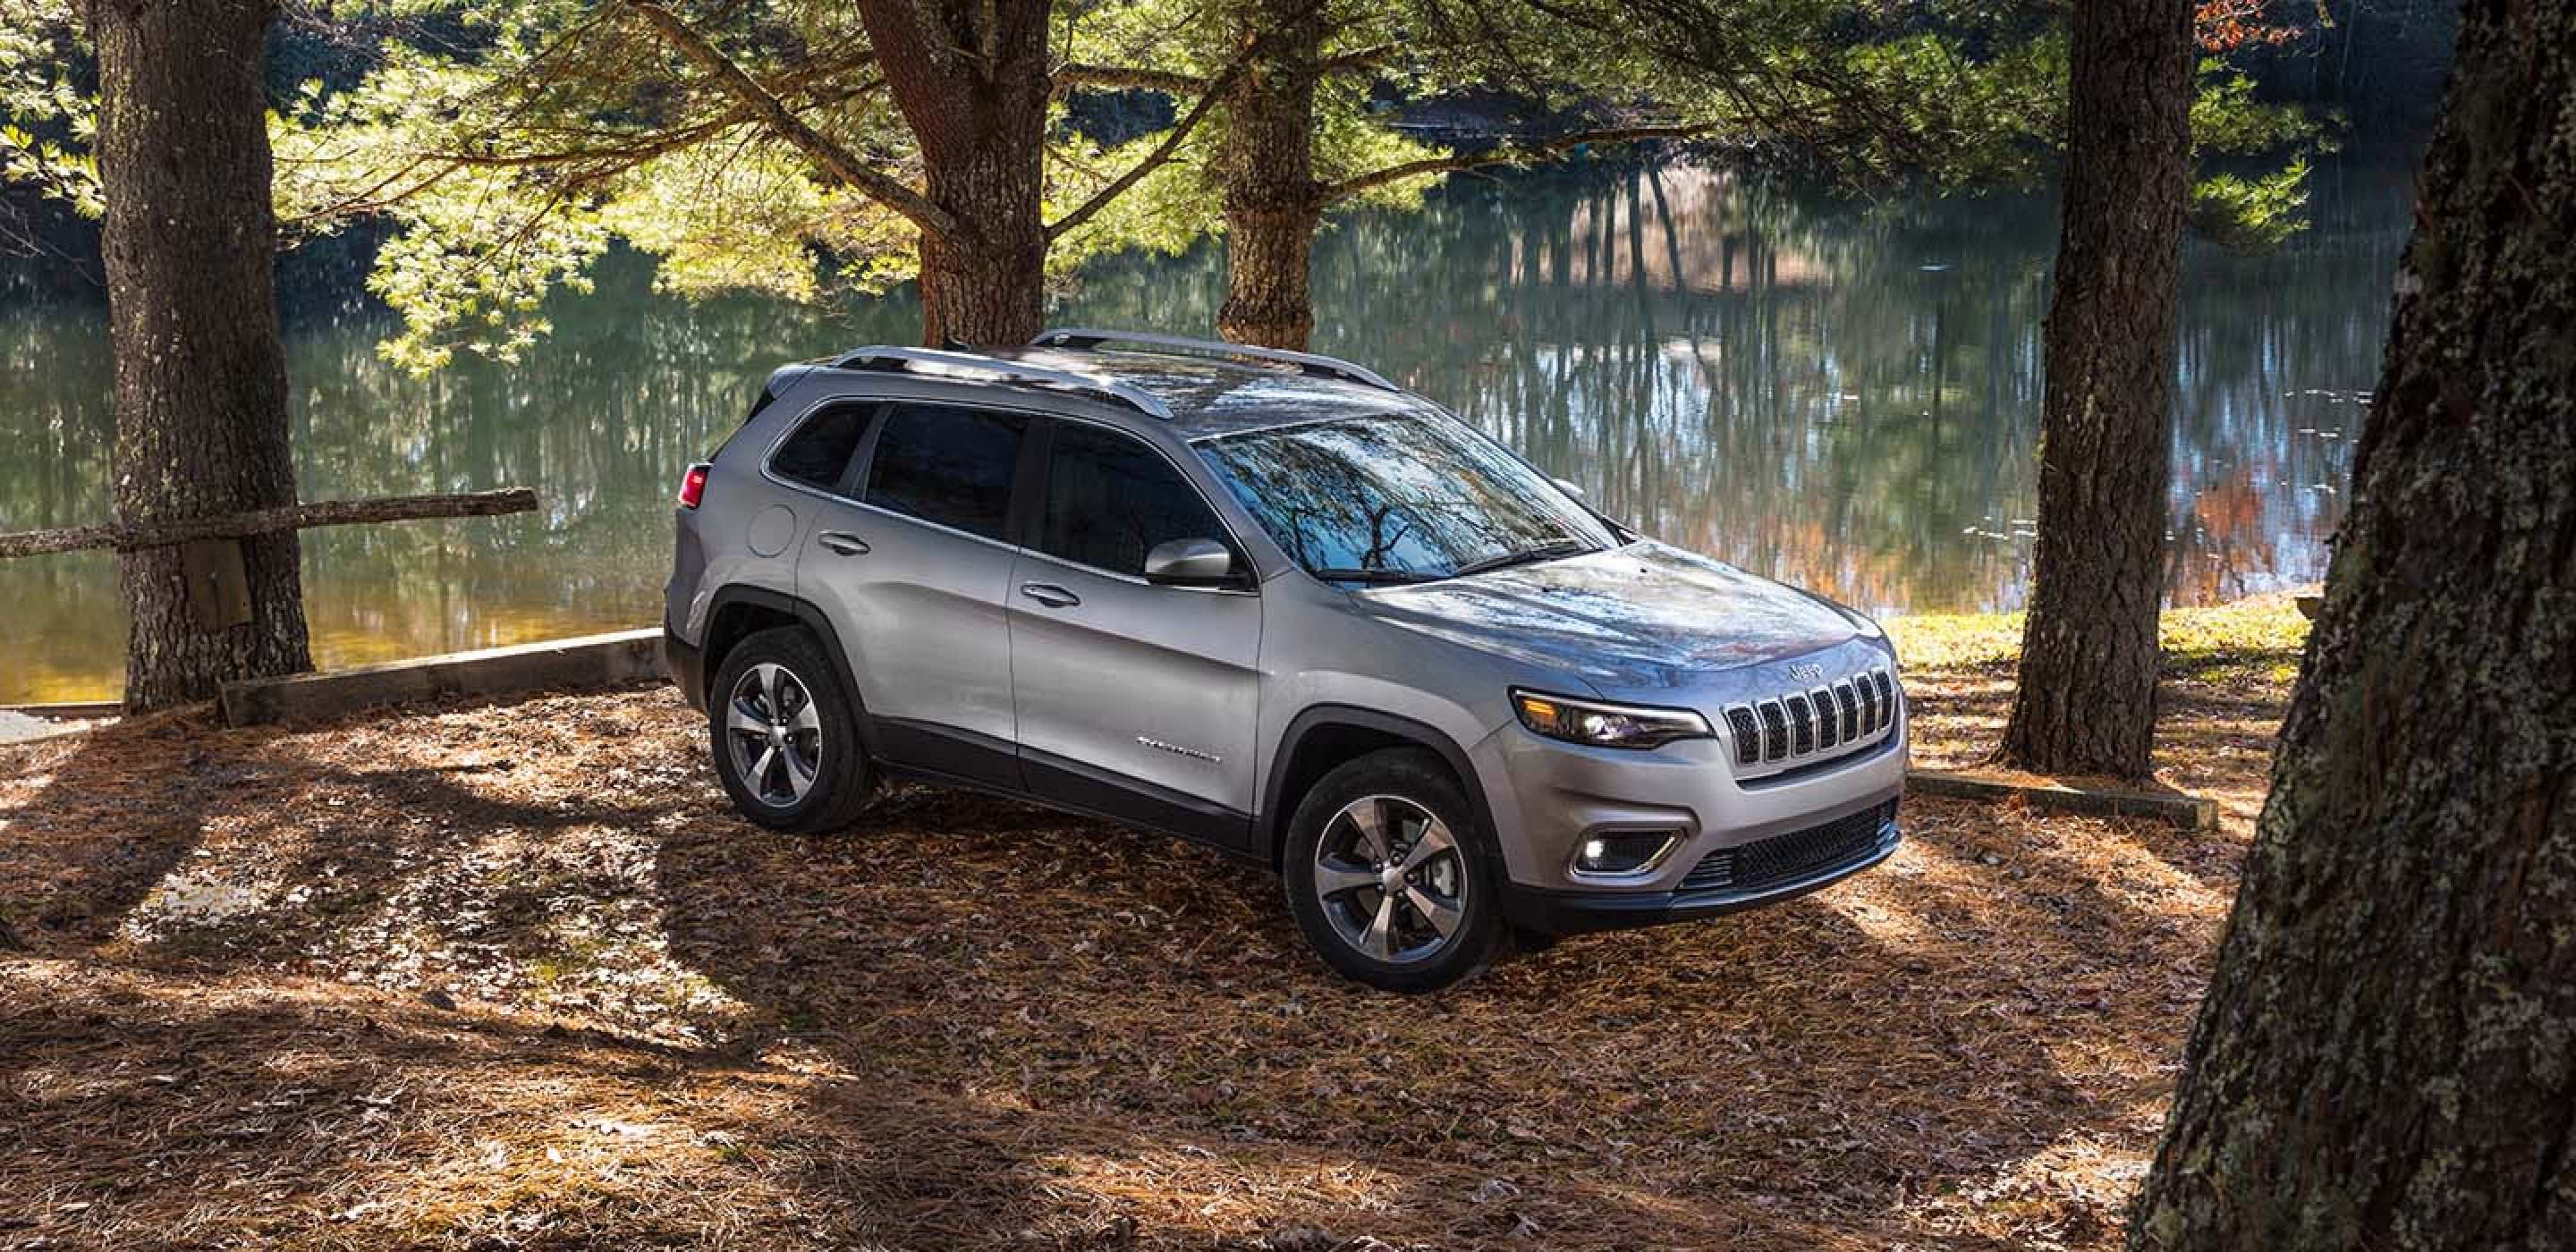 96 The The 2019 Jeep Cherokee Ride Quality Release Date Price And Review Price and Review for The 2019 Jeep Cherokee Ride Quality Release Date Price And Review